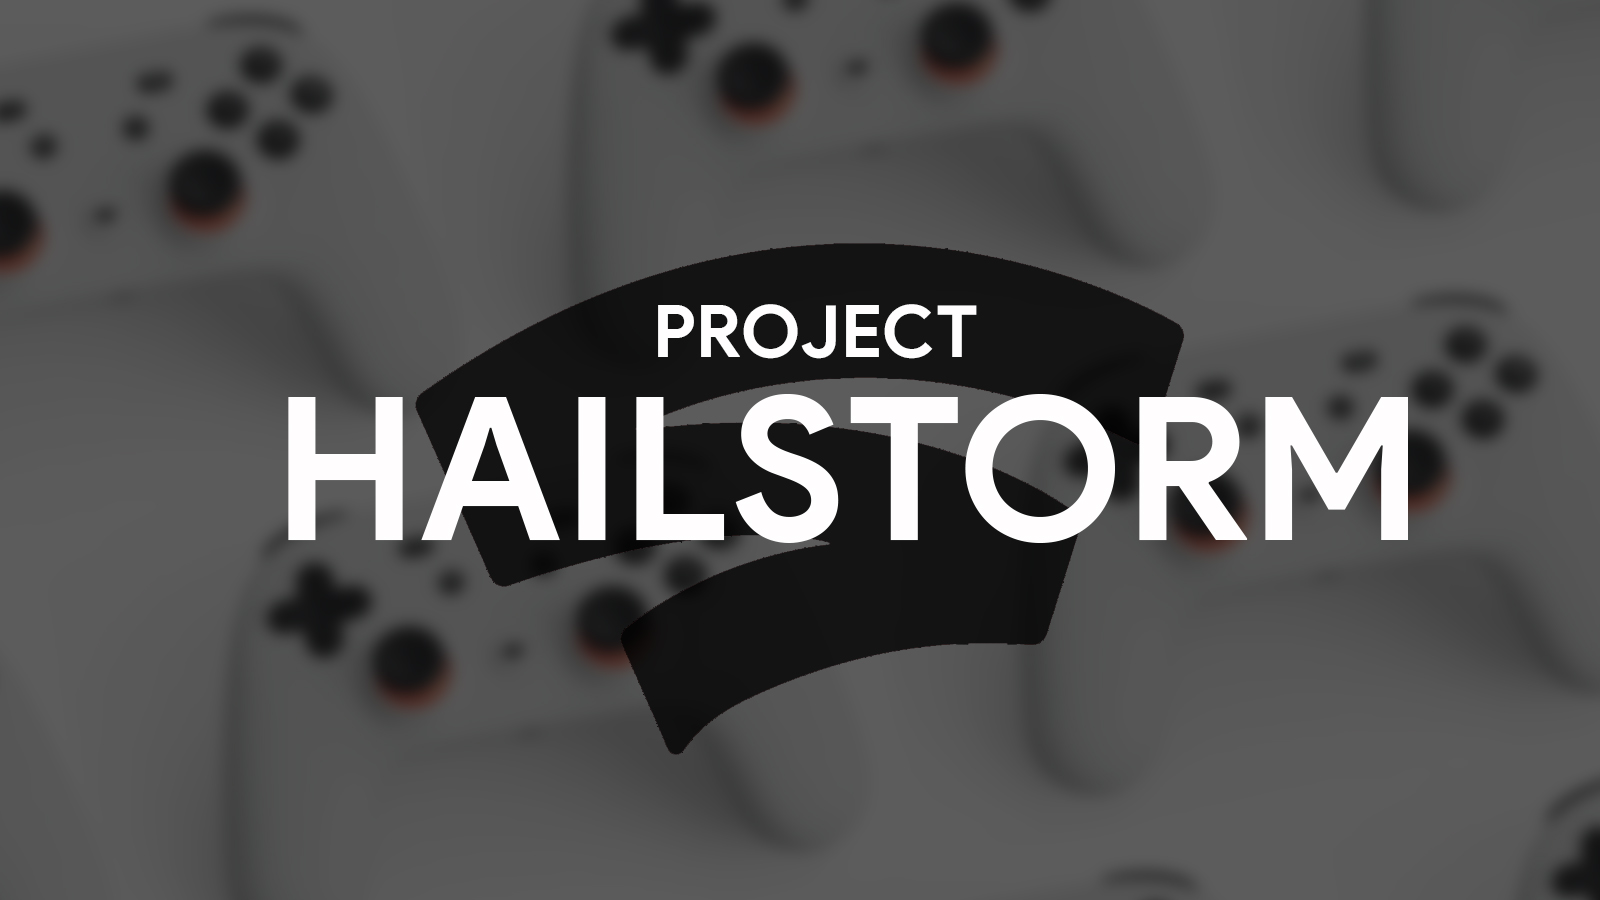 Stadia's 'Project Hailstorm' could be used to bring the service to millions of TVs rapidly